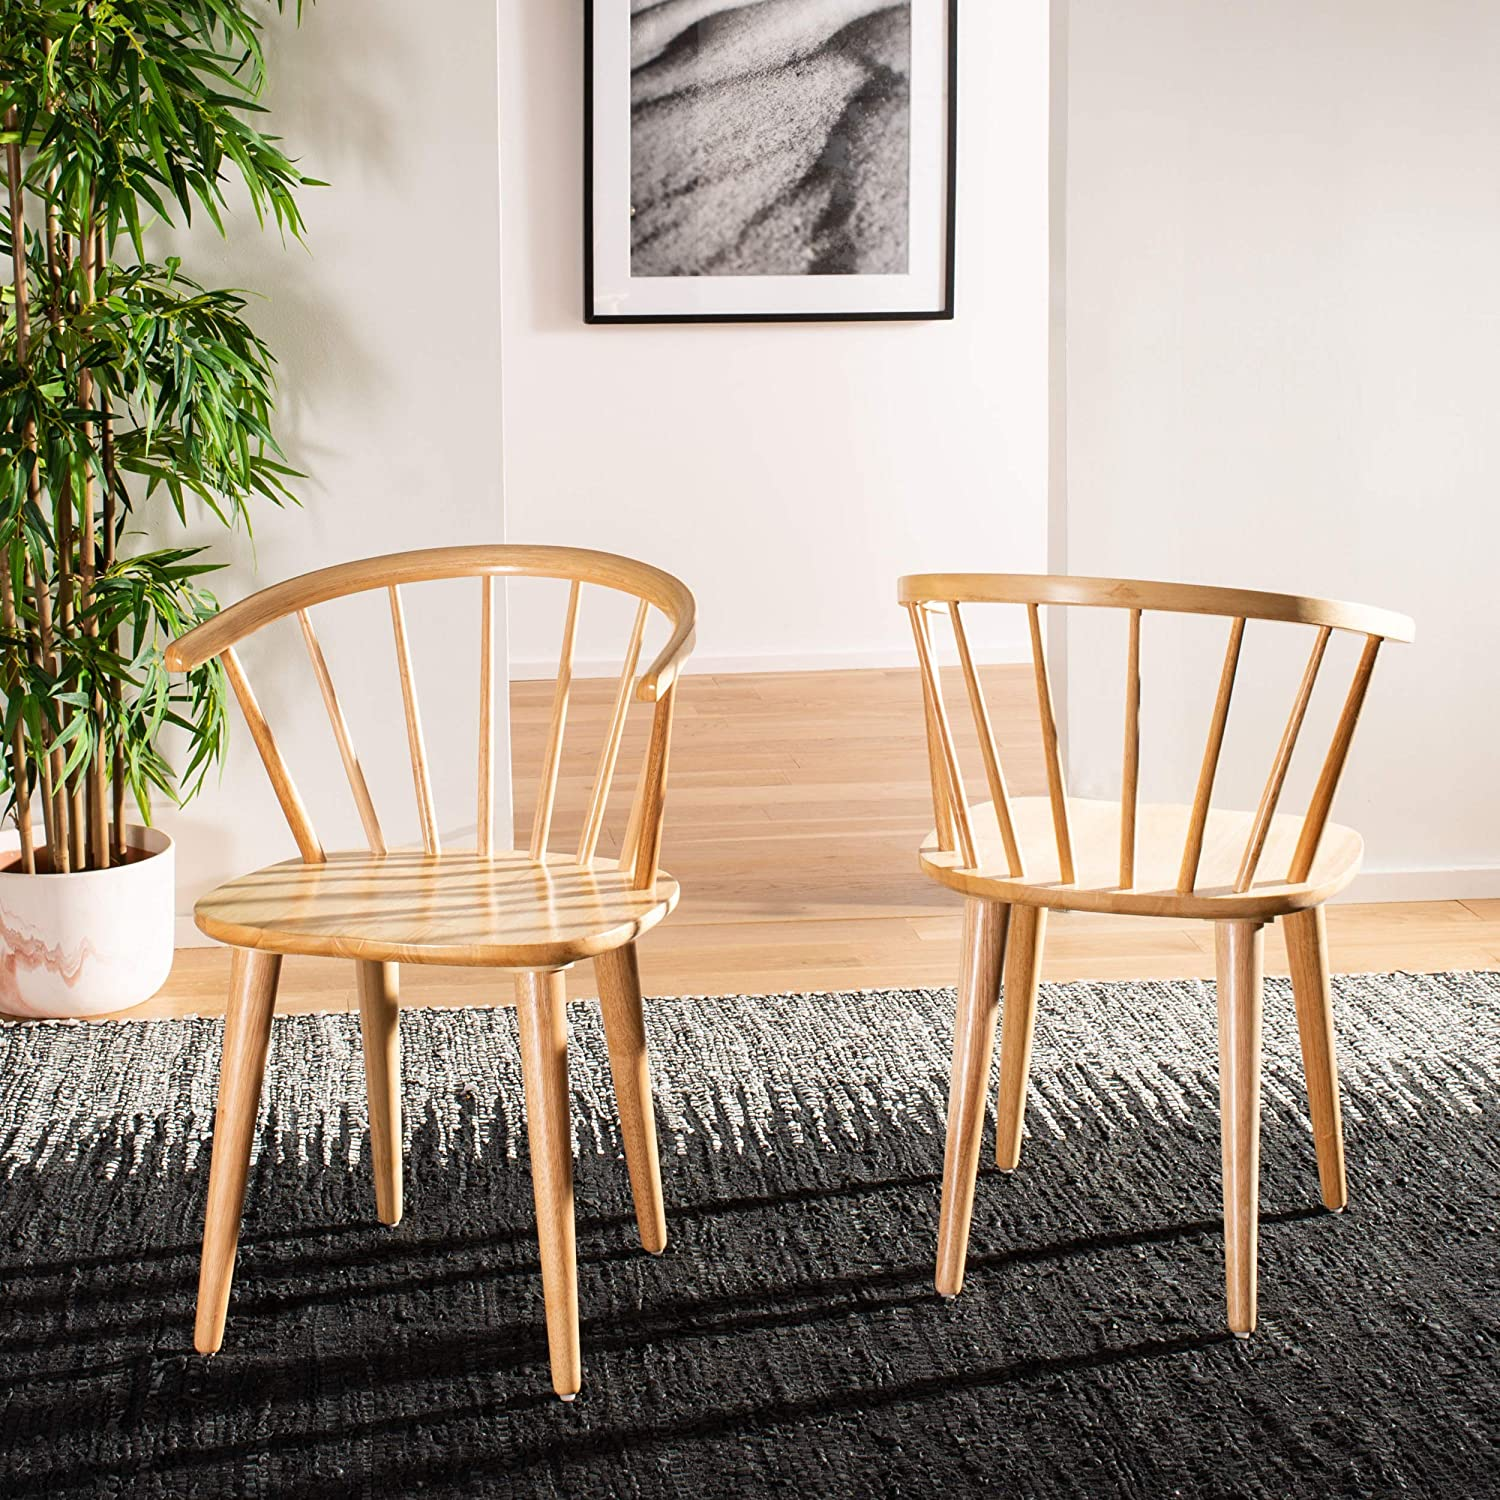 Safavieh Home Collection Blanchard Natural Curved Spindle Side Chair Set of 2